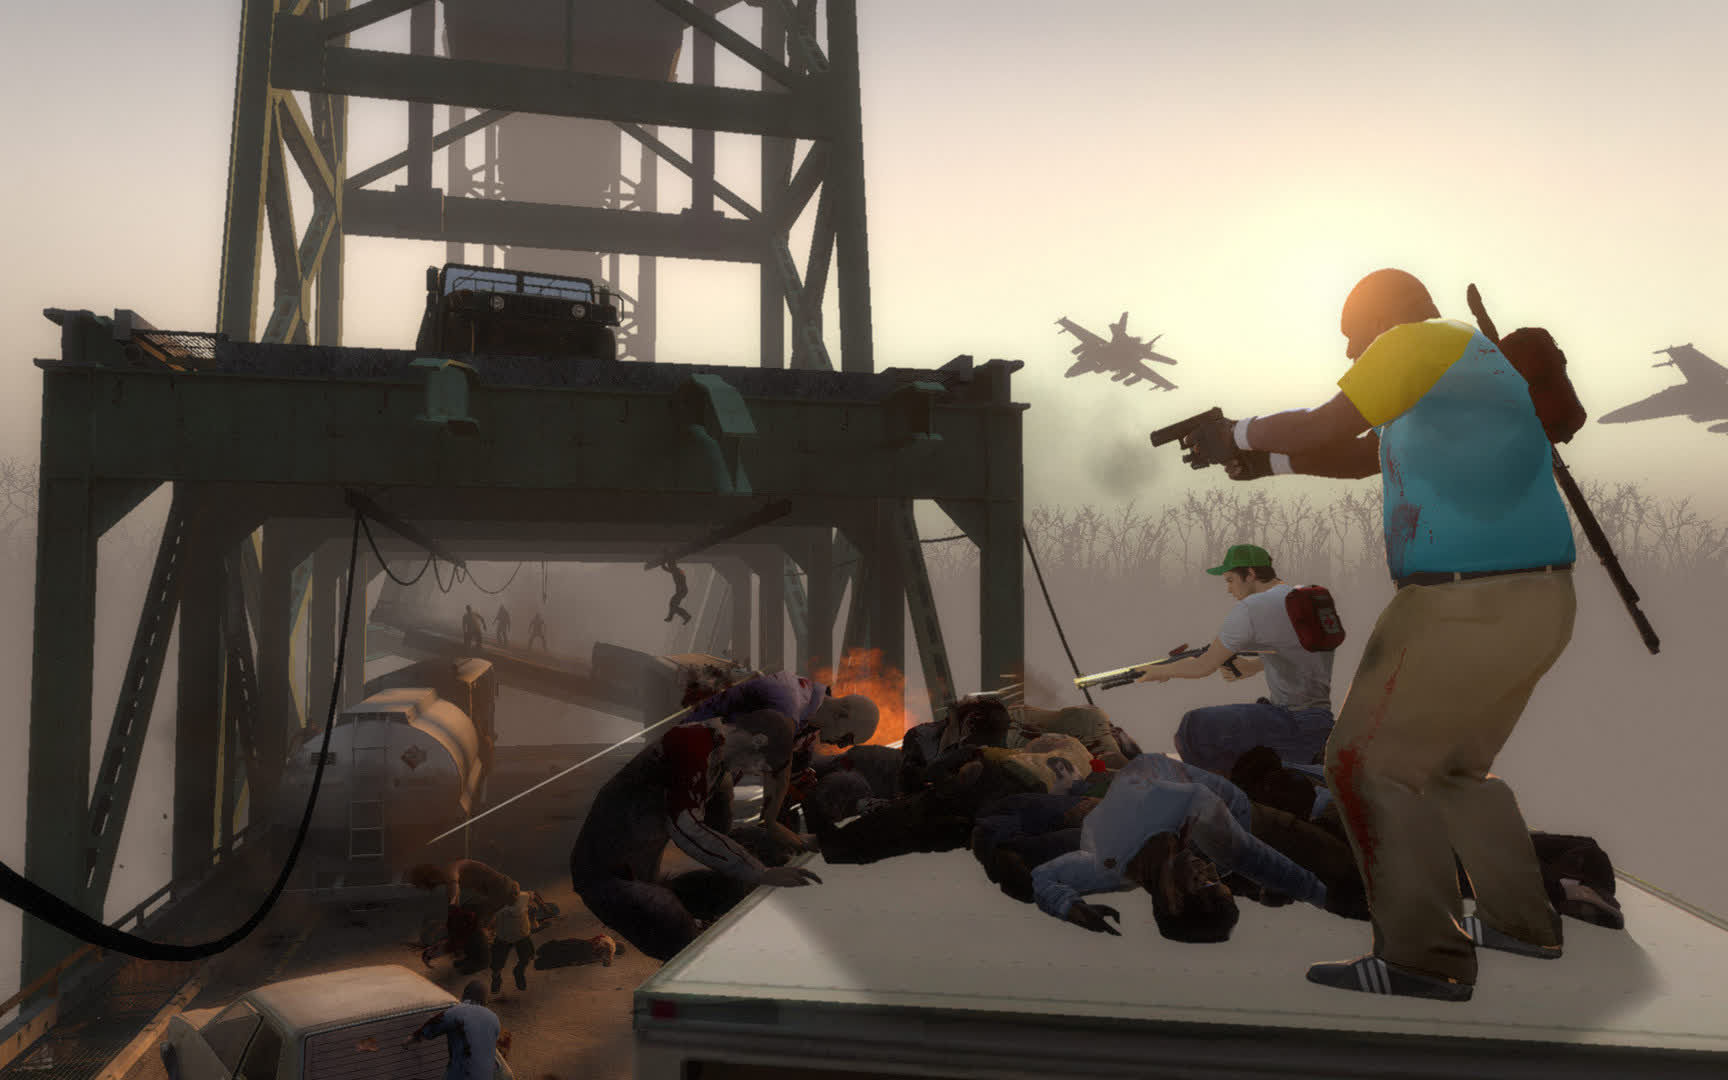 Left 4 Dead 2 update is now available for free to all PC players